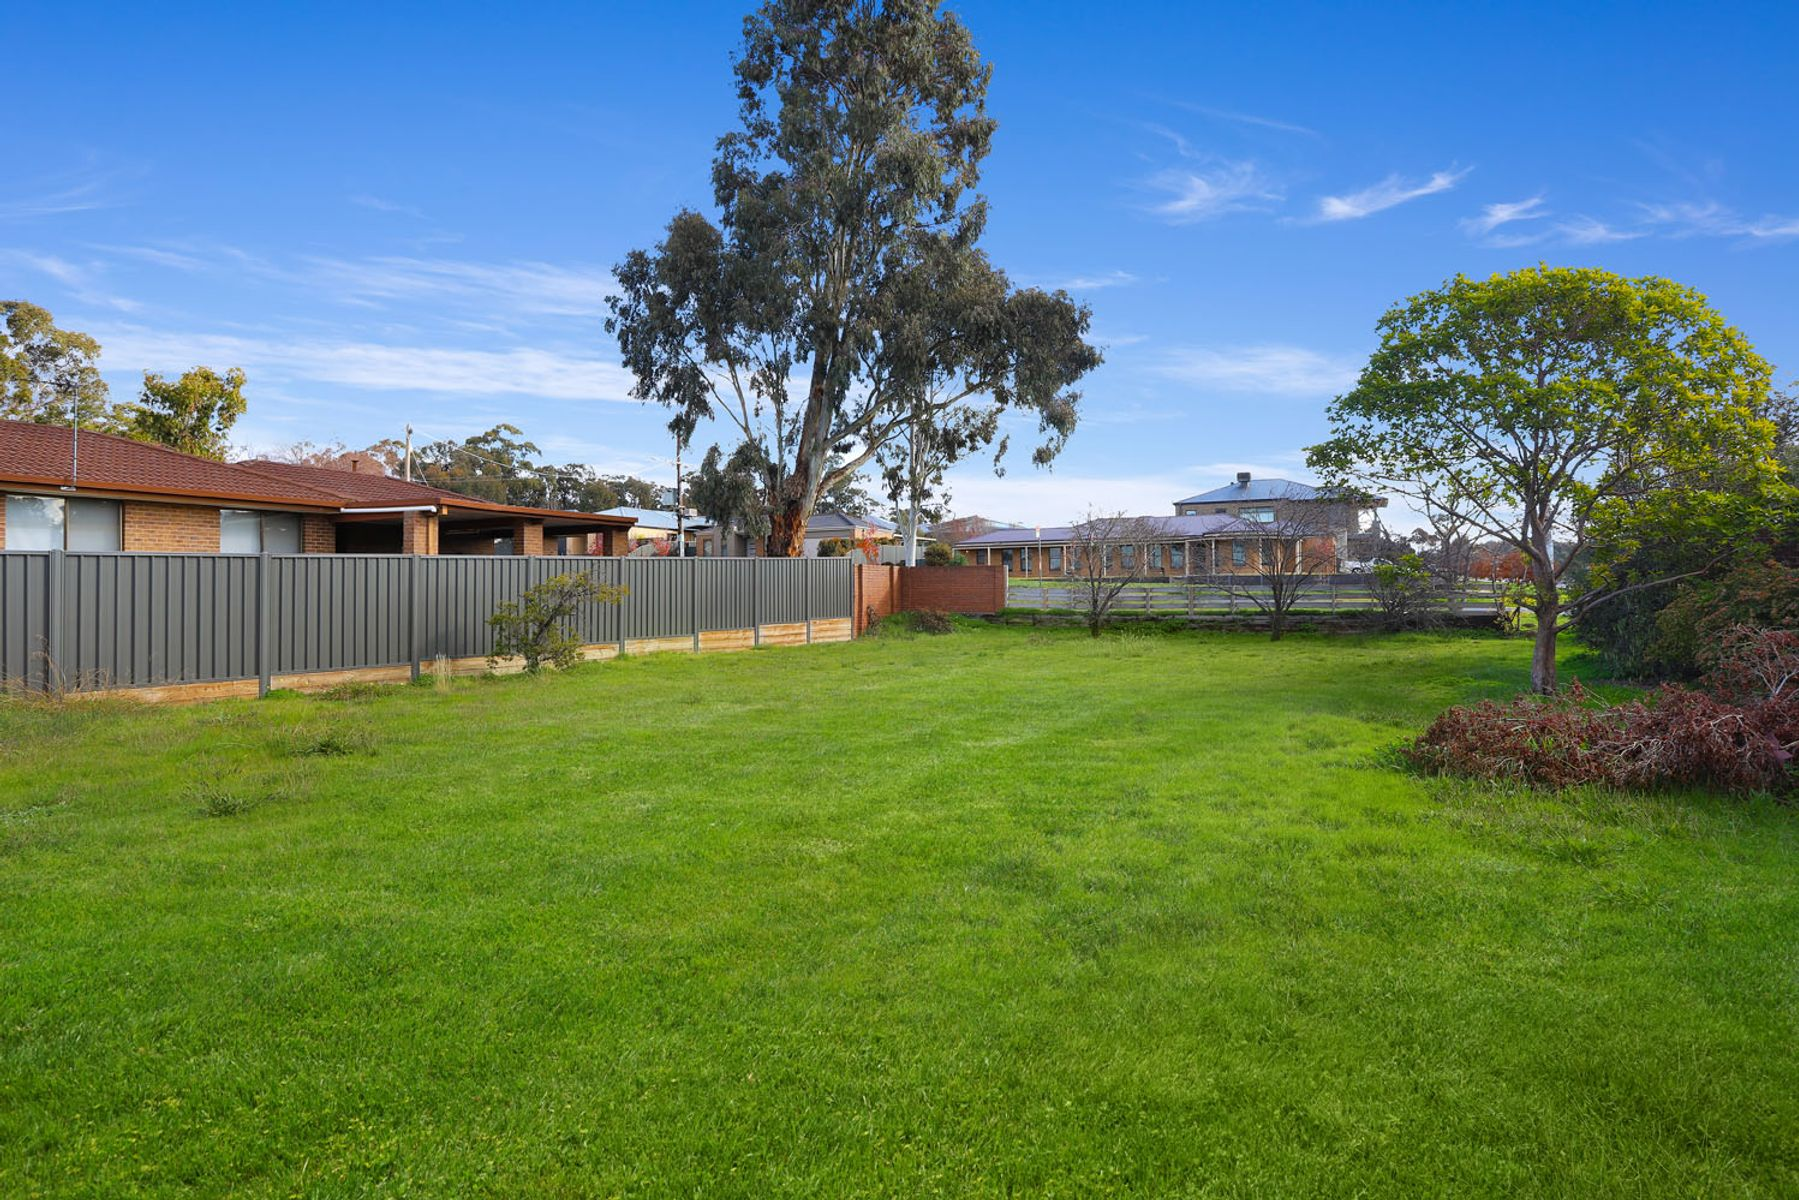 111 Aspinall Street, Golden Square, VIC 3555